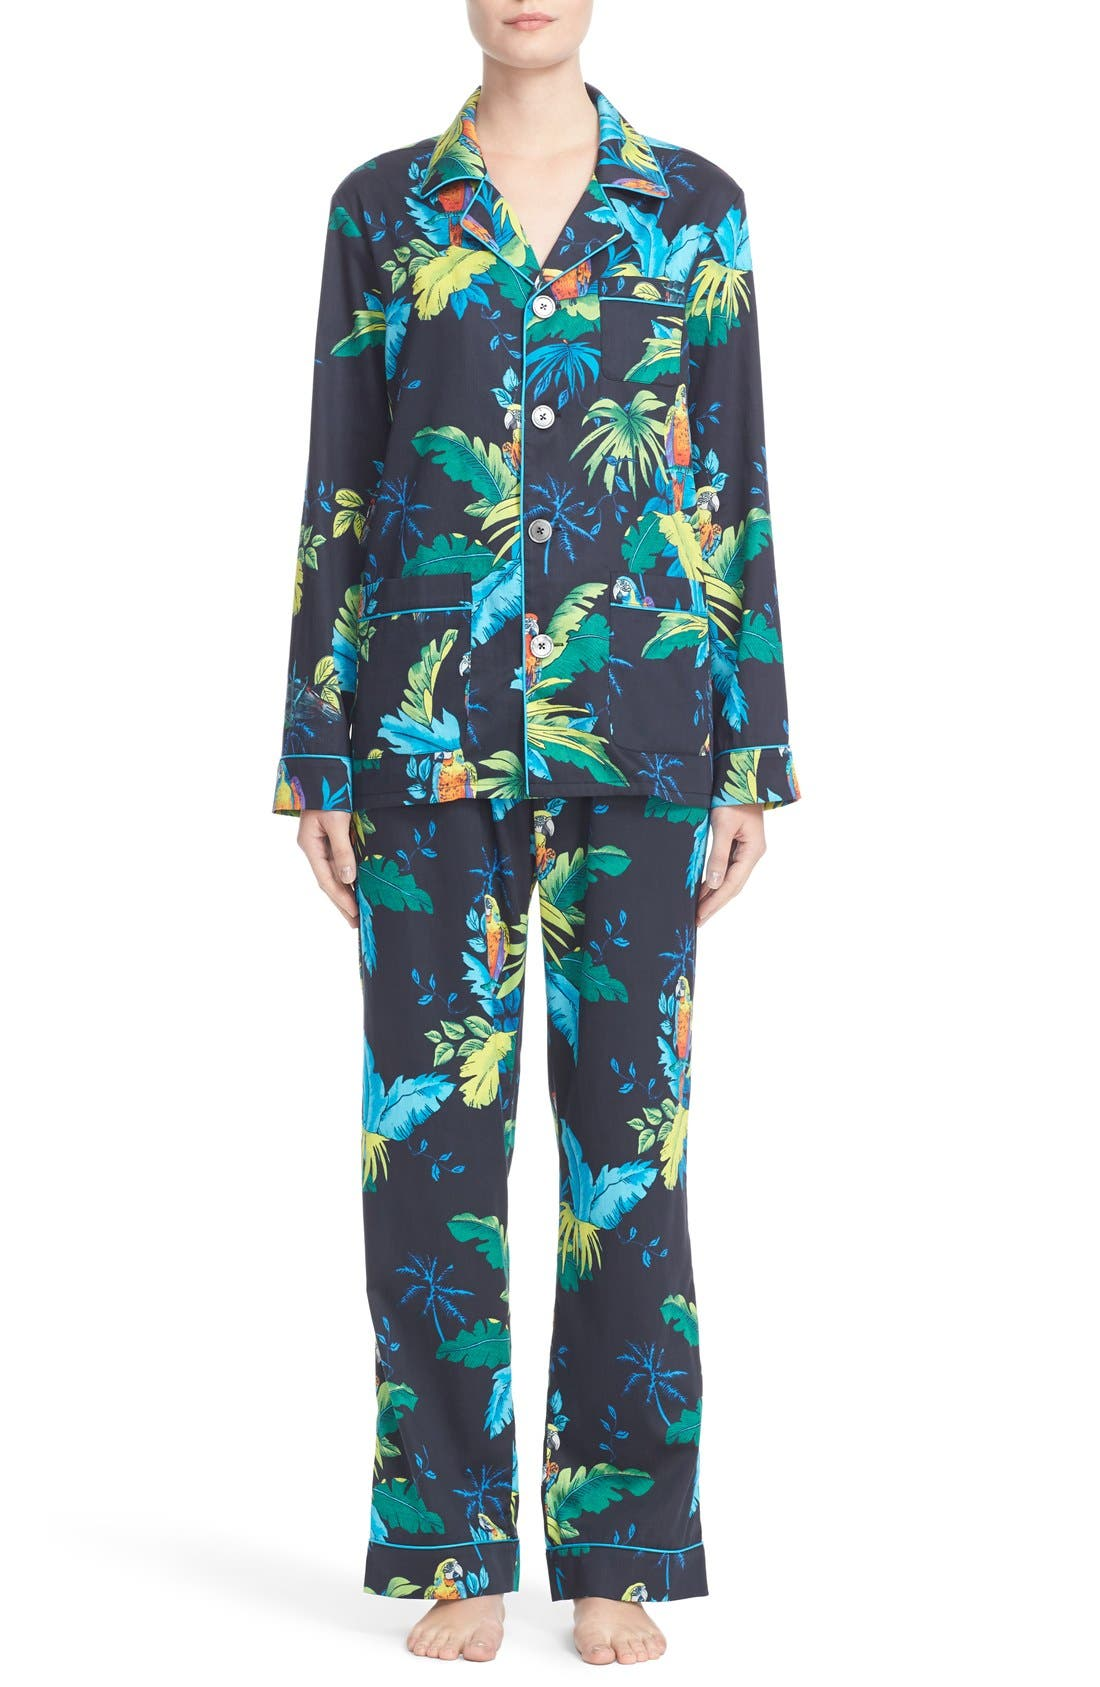 MARC JACOBS Parrot Print Cotton Pajamas